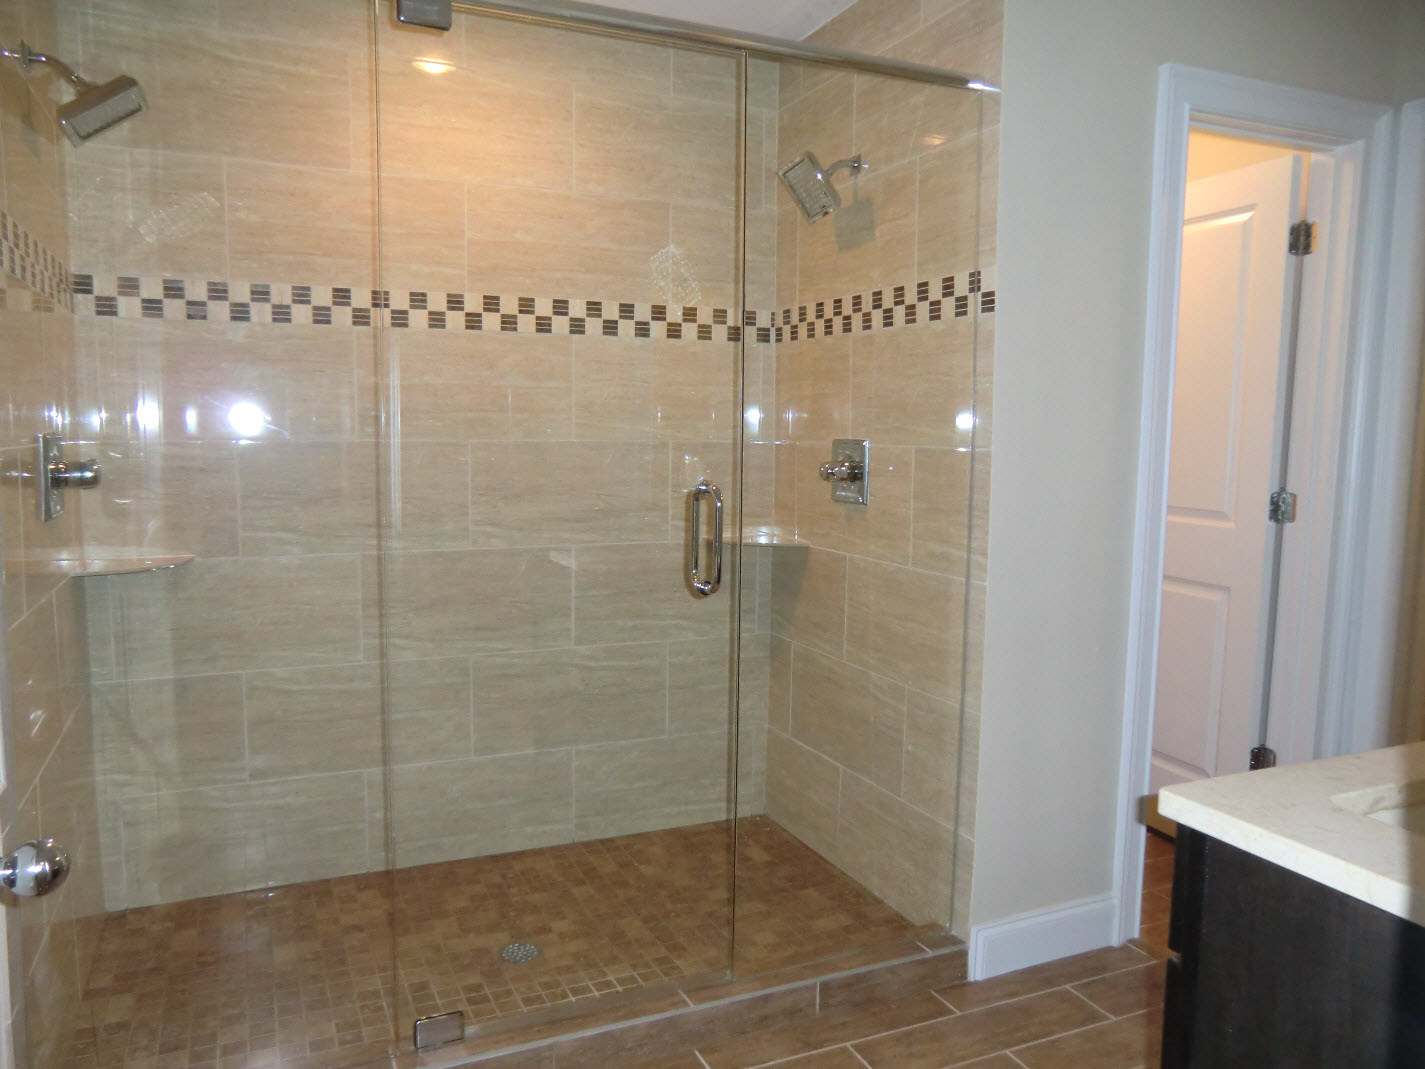 Bathroom Remodel Double Shower : Master bath with double headed quot party shower all